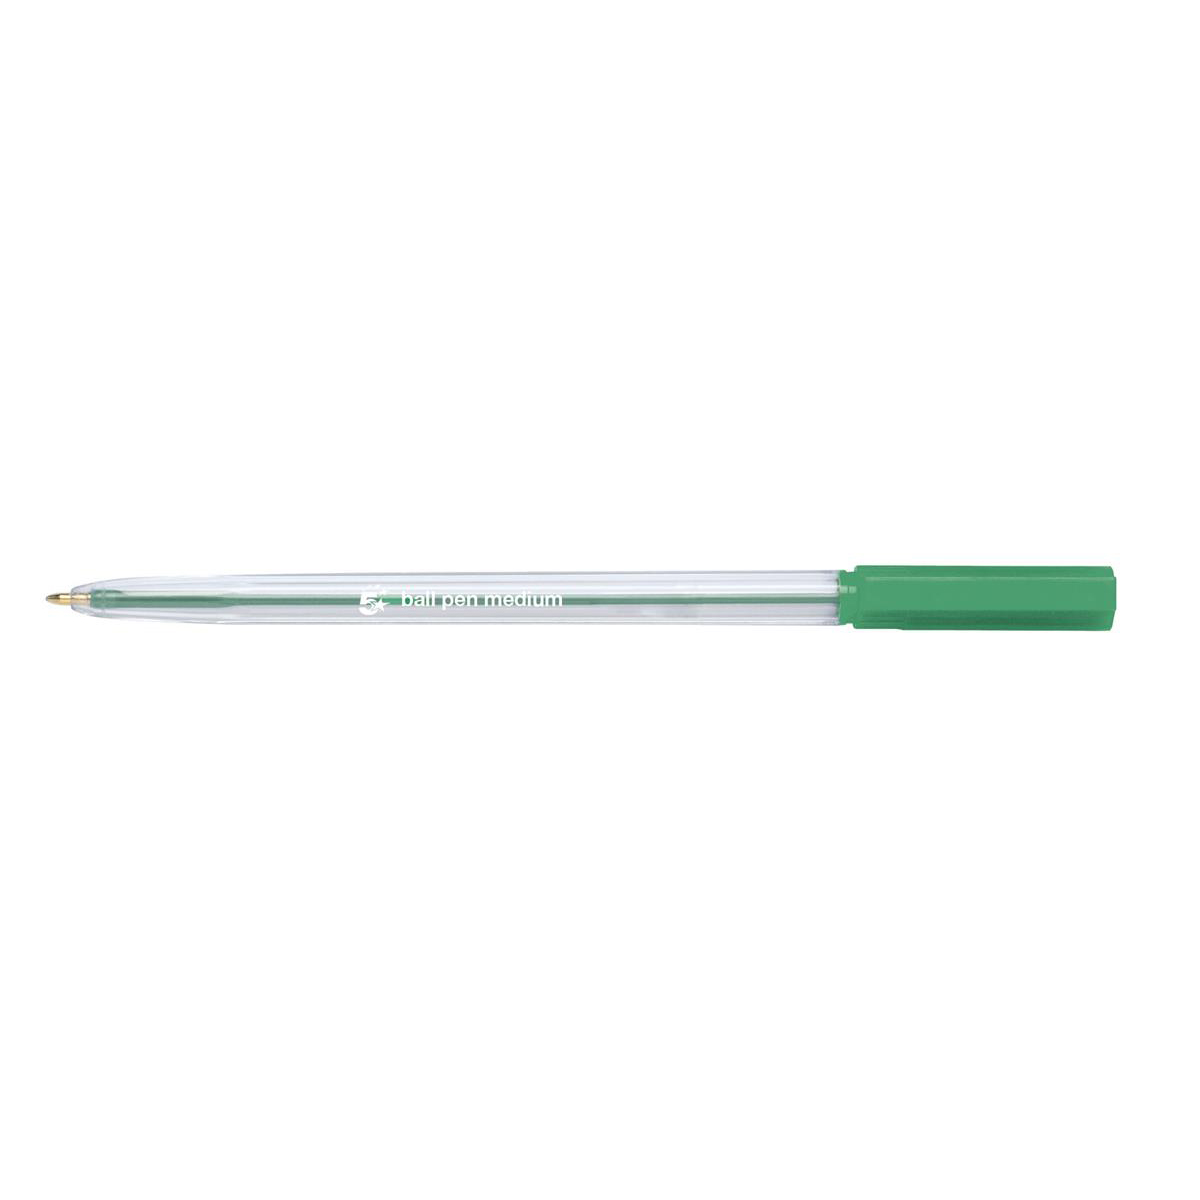 Ball Point Pens 5 Star Office Ball Pen Clear Barrel Medium 1.0mm Tip 0.7mm Line Green Pack 20